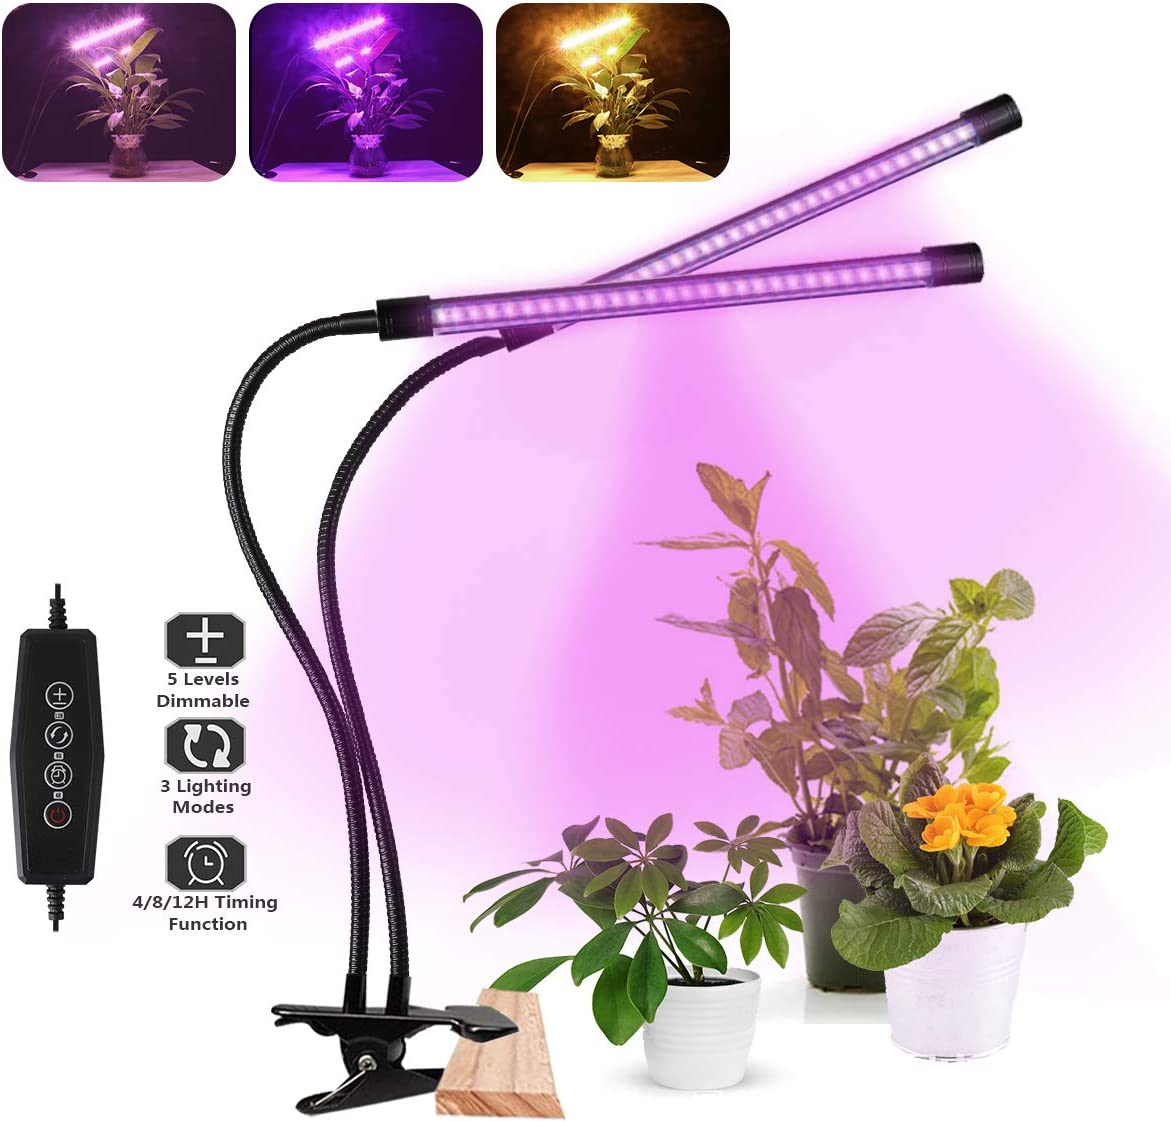 LED Grow Light, Full Spectrum Dual-Head 60 LED 50W Clip-on Plant Light for Indoor Plants Seedlings Succulents,3 Modes 5-Level Dimmable,Auto On Off Timer 4H 8H 12H